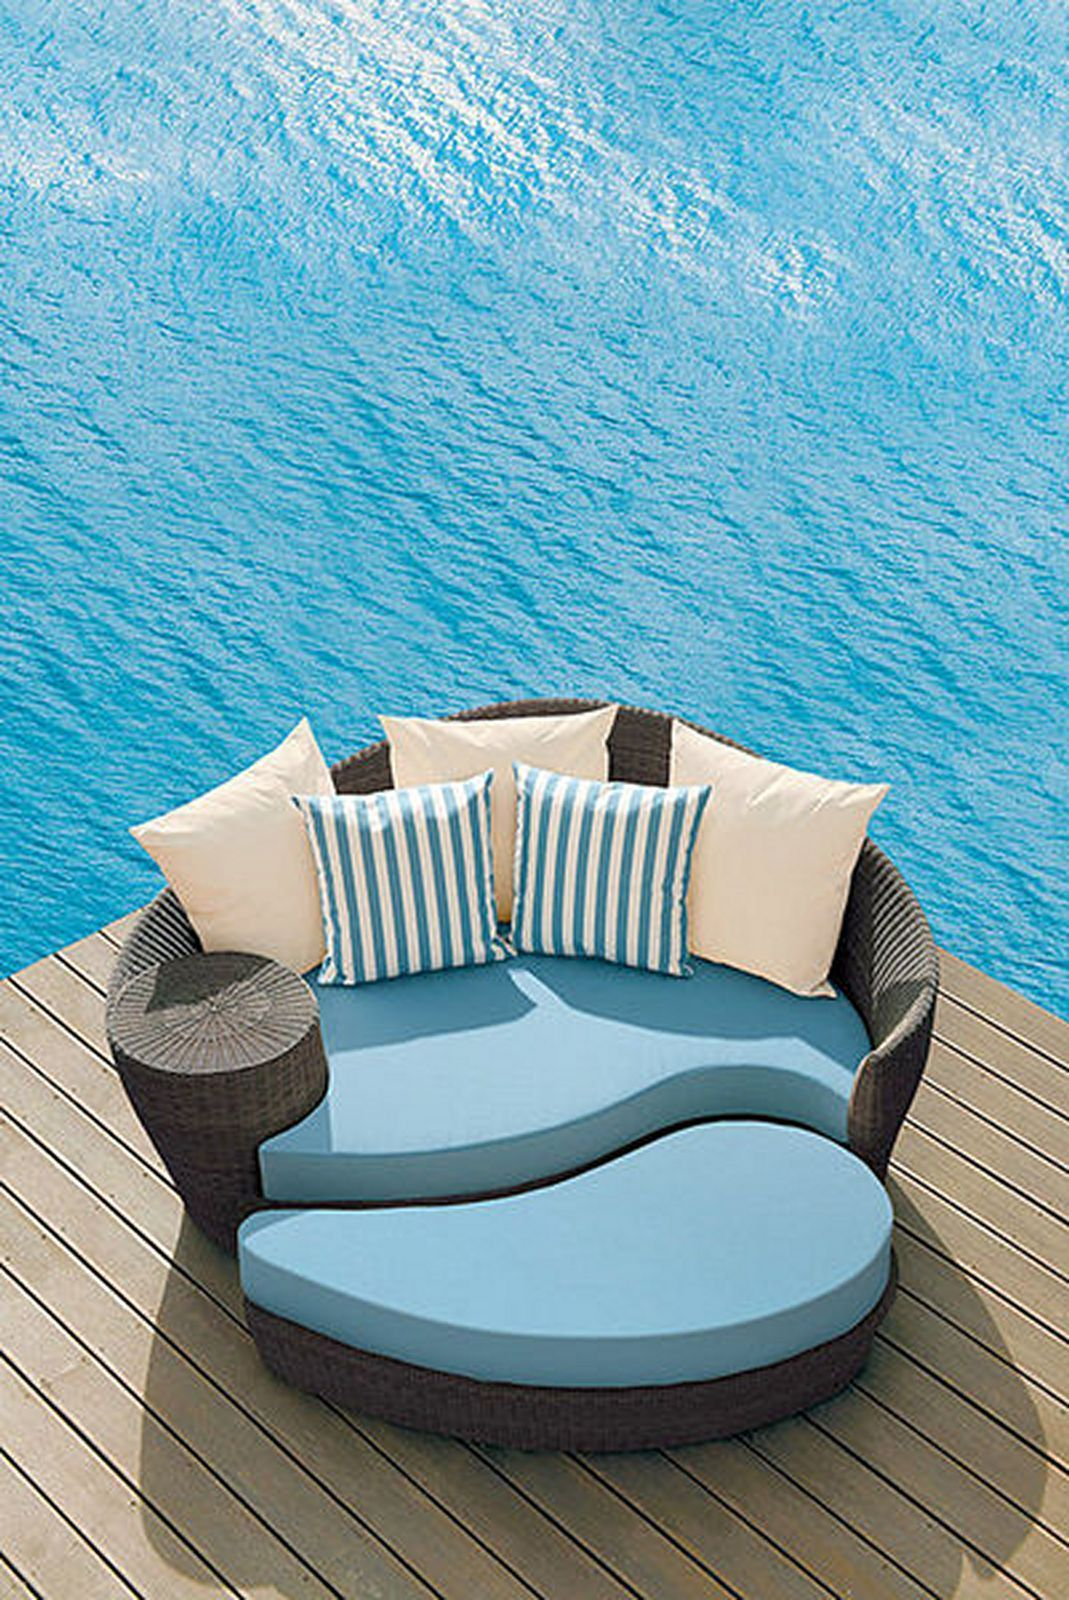 - Sweet Take On Round Daybed For Pool Back Yard Patio Furniture